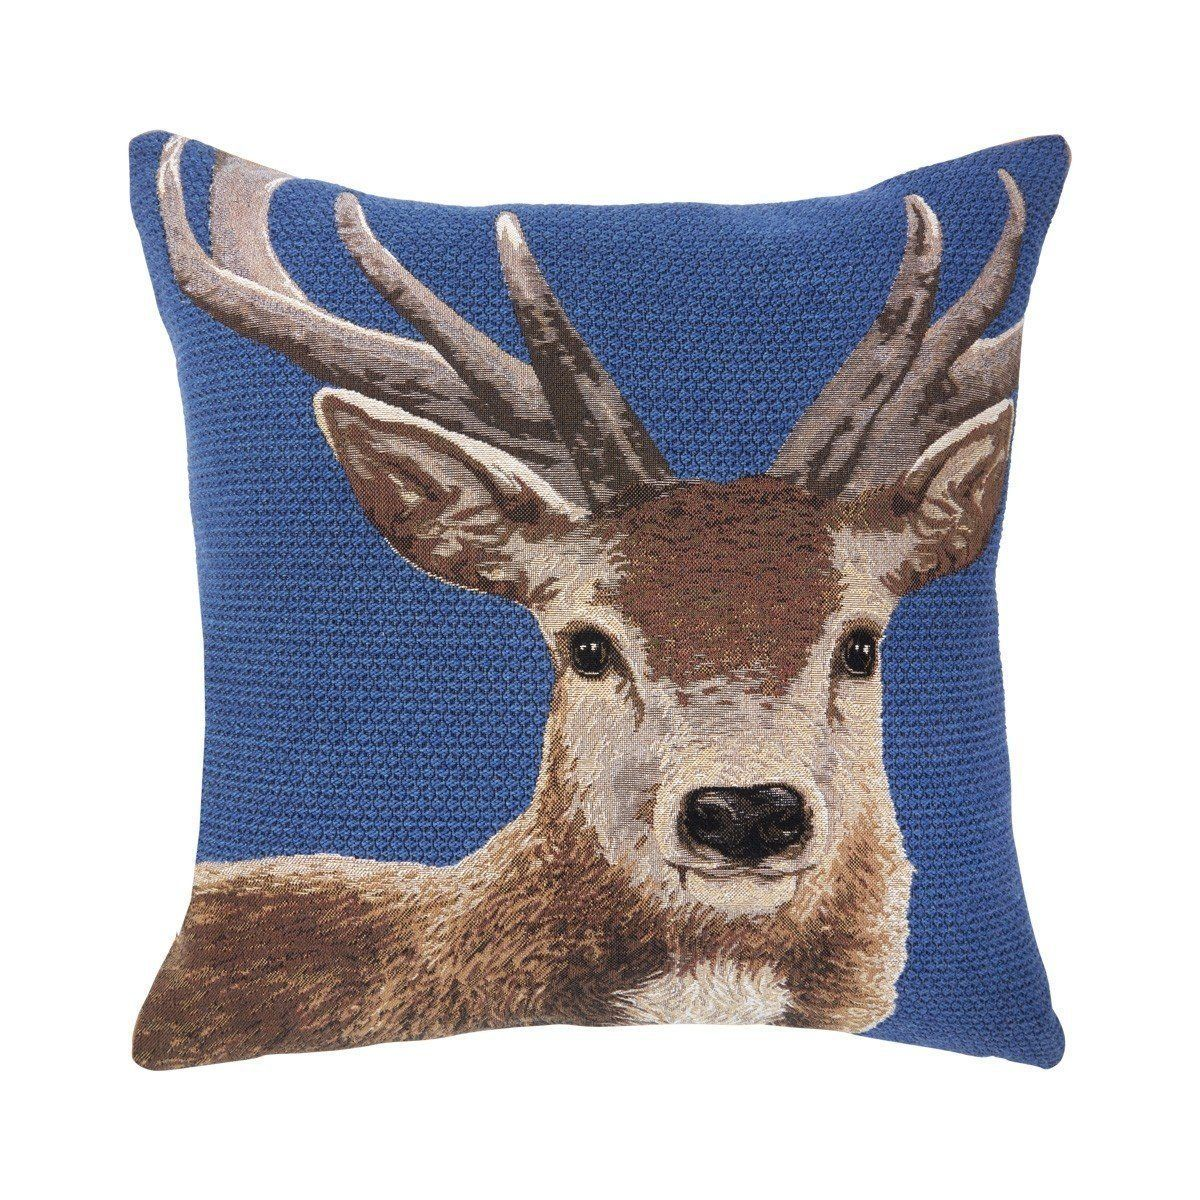 Pleasing Sostene Cobalt Deer Throw Pillow Products In 2019 Throw Inzonedesignstudio Interior Chair Design Inzonedesignstudiocom